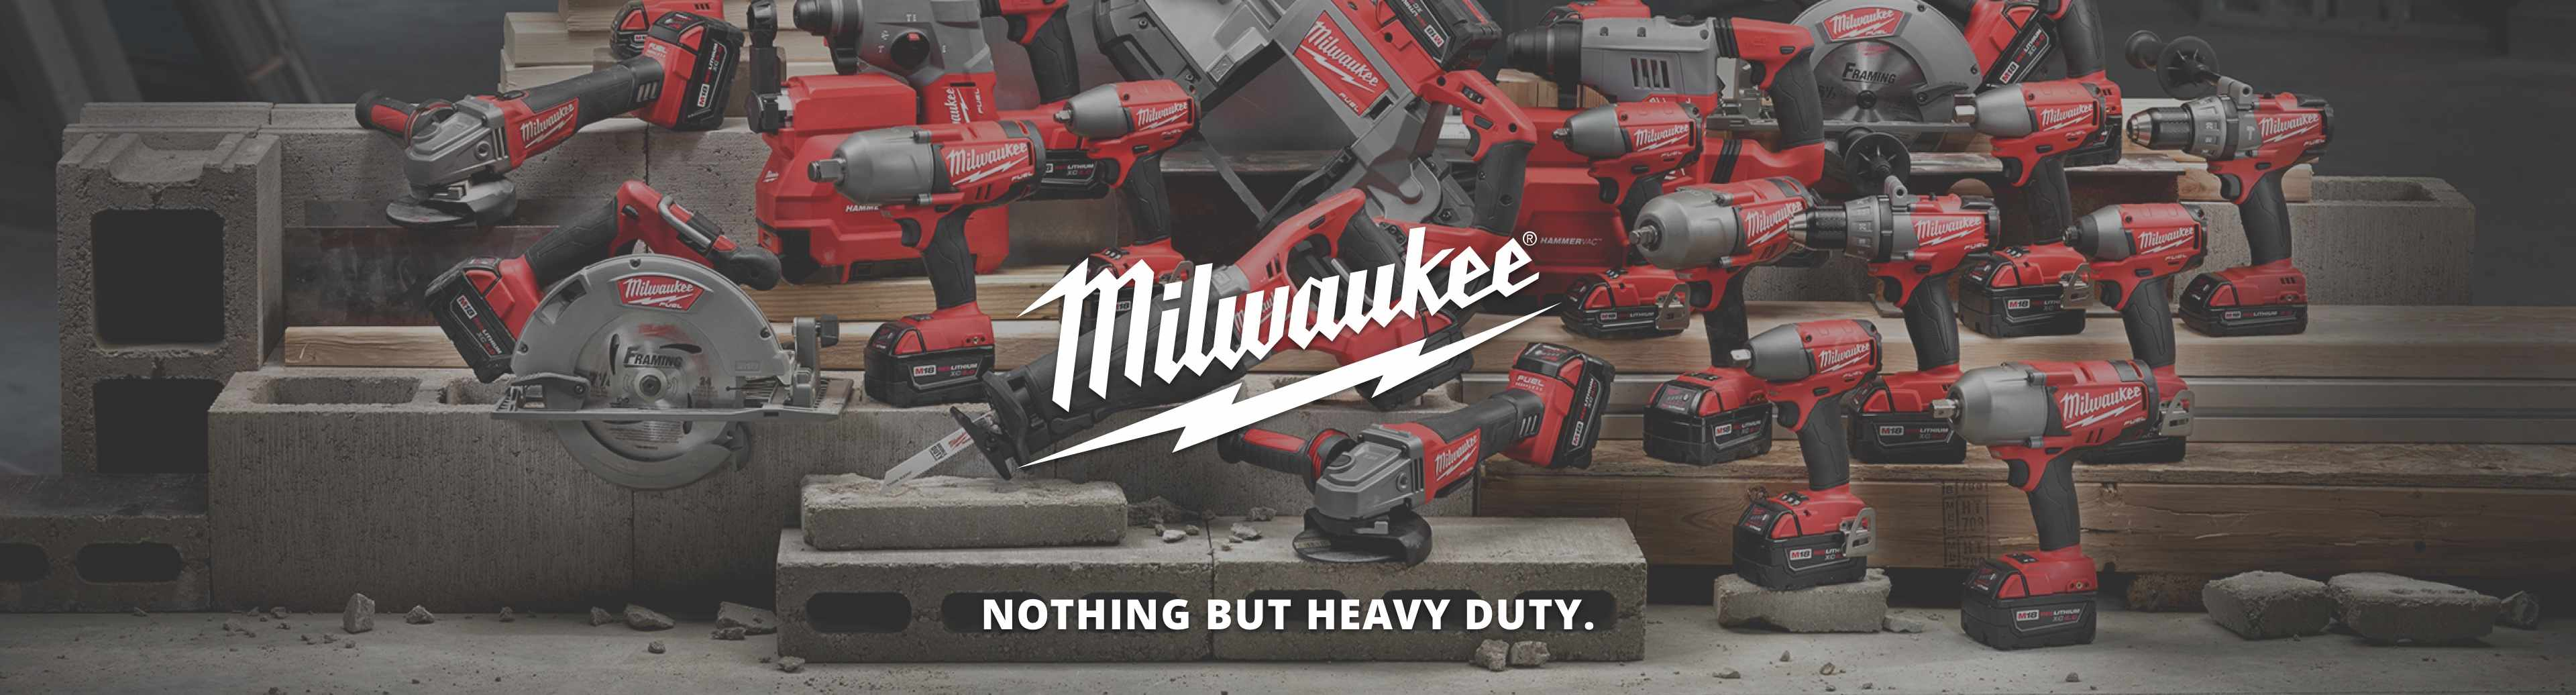 Shop Milwaukee power tools at central Lumber & Hardware